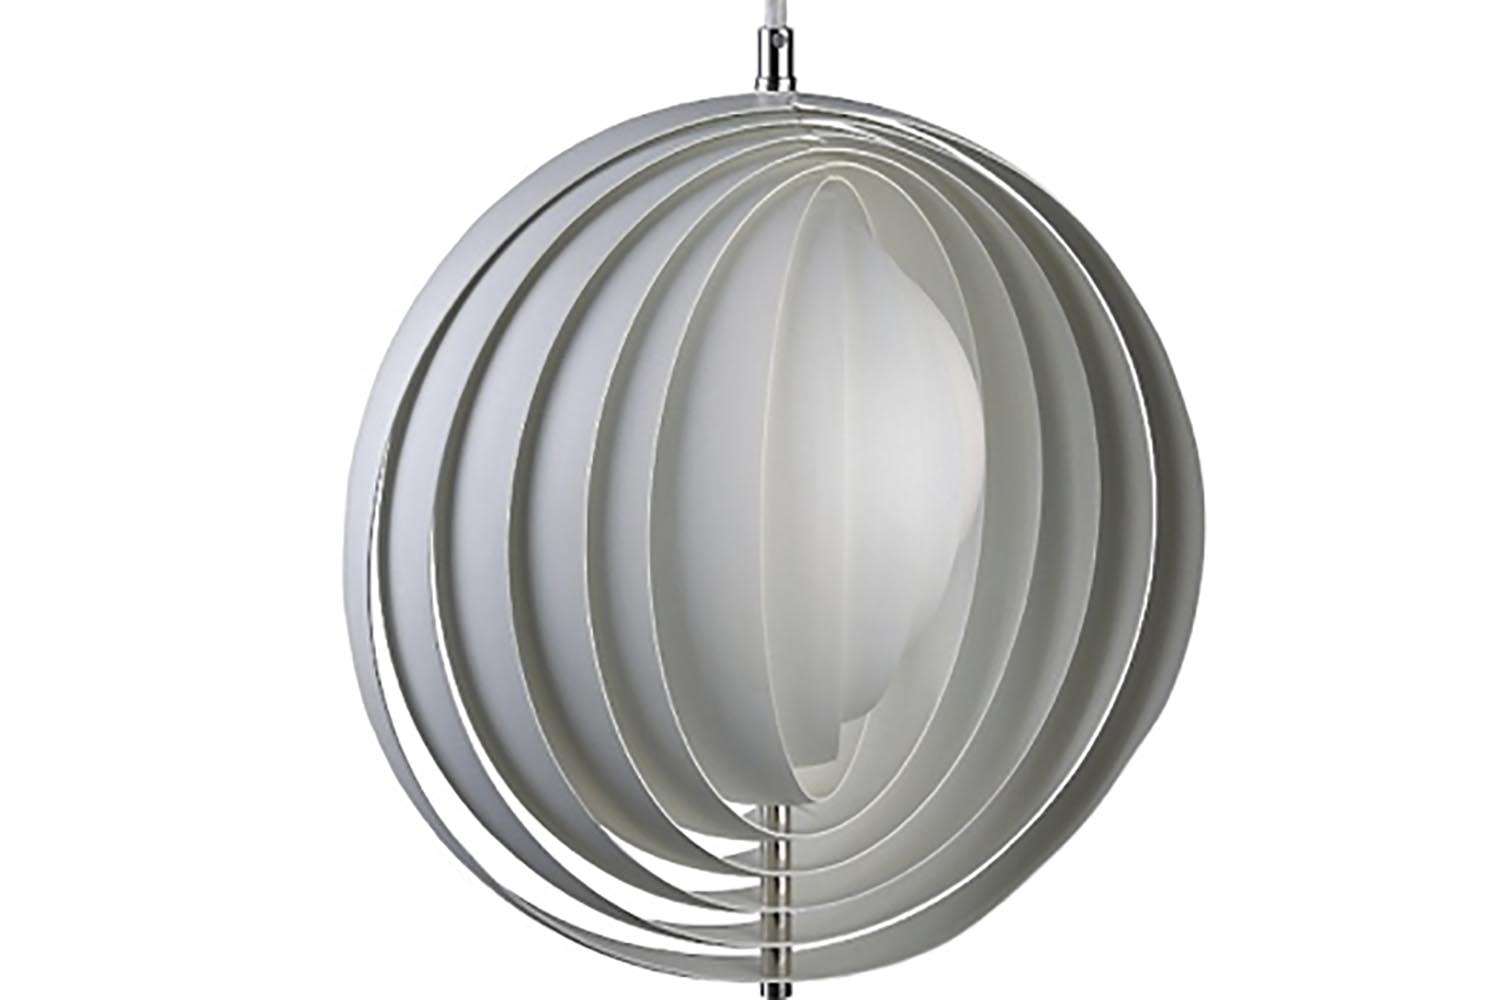 Moon XXXL Suspension Lamp by Verner Panton for Verpan